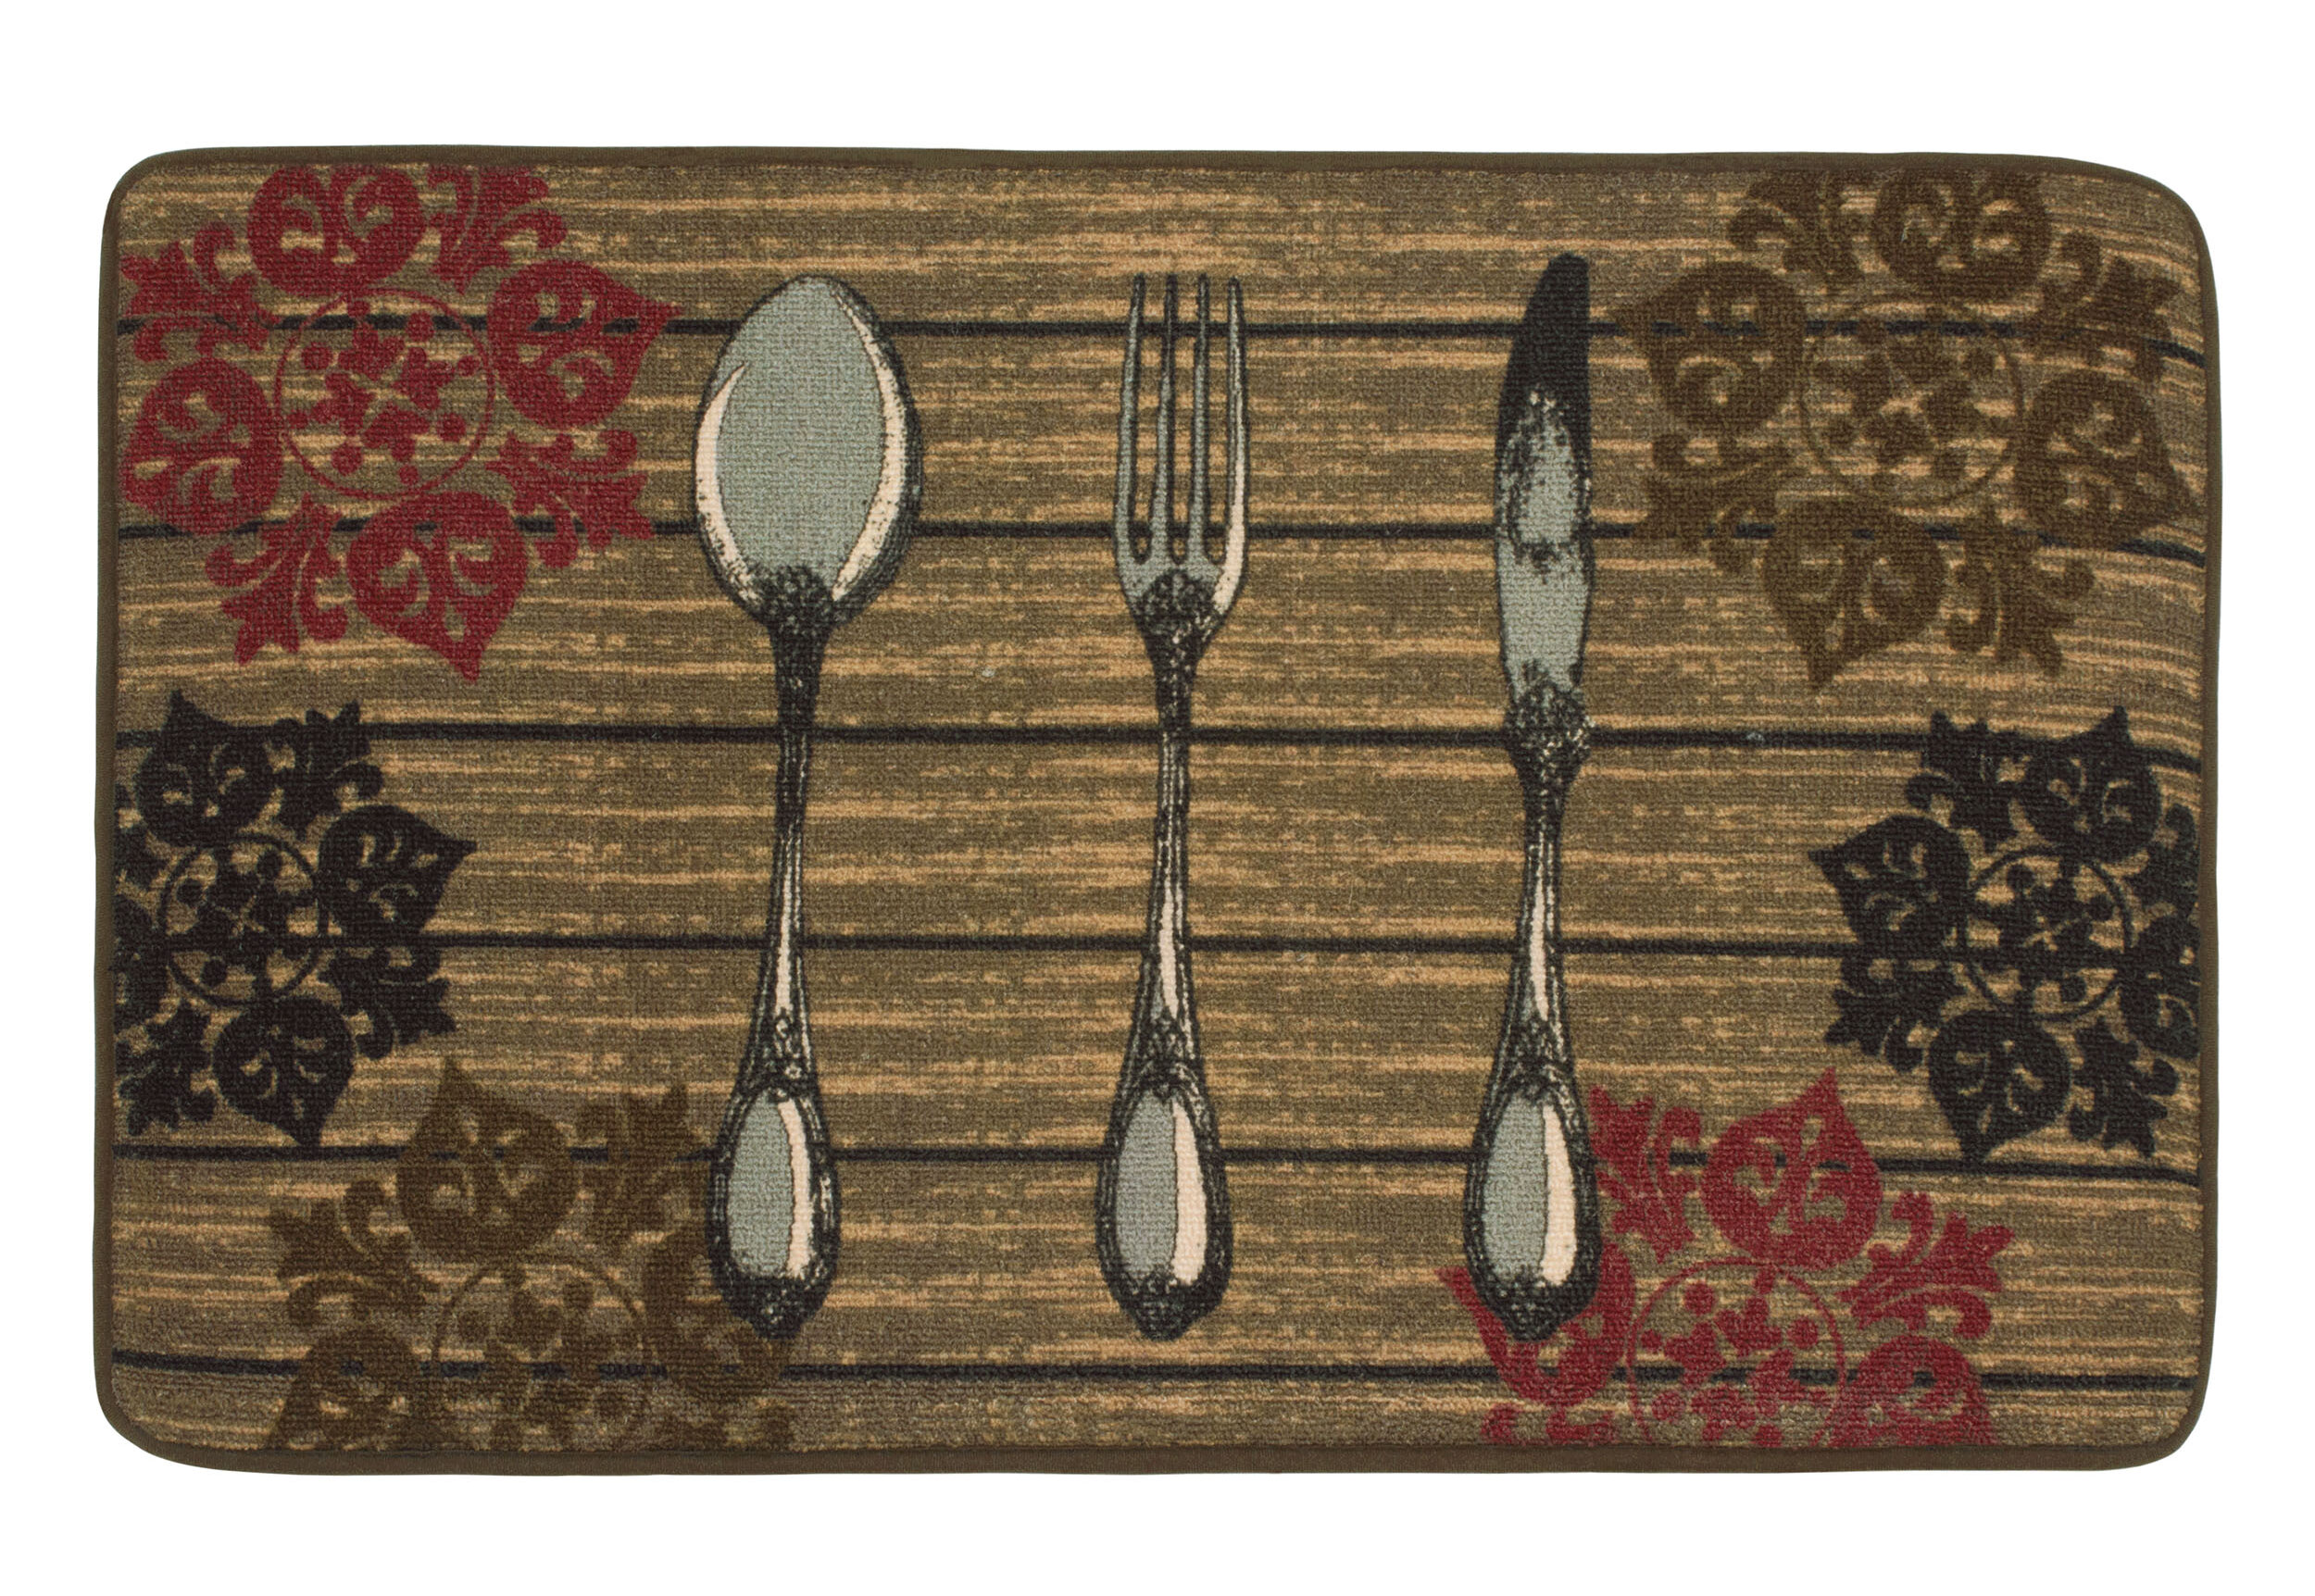 Fleur De Lis Living Rolph Hd Printed Rustic Utensils Kitchen Mat Reviews Wayfair Ca